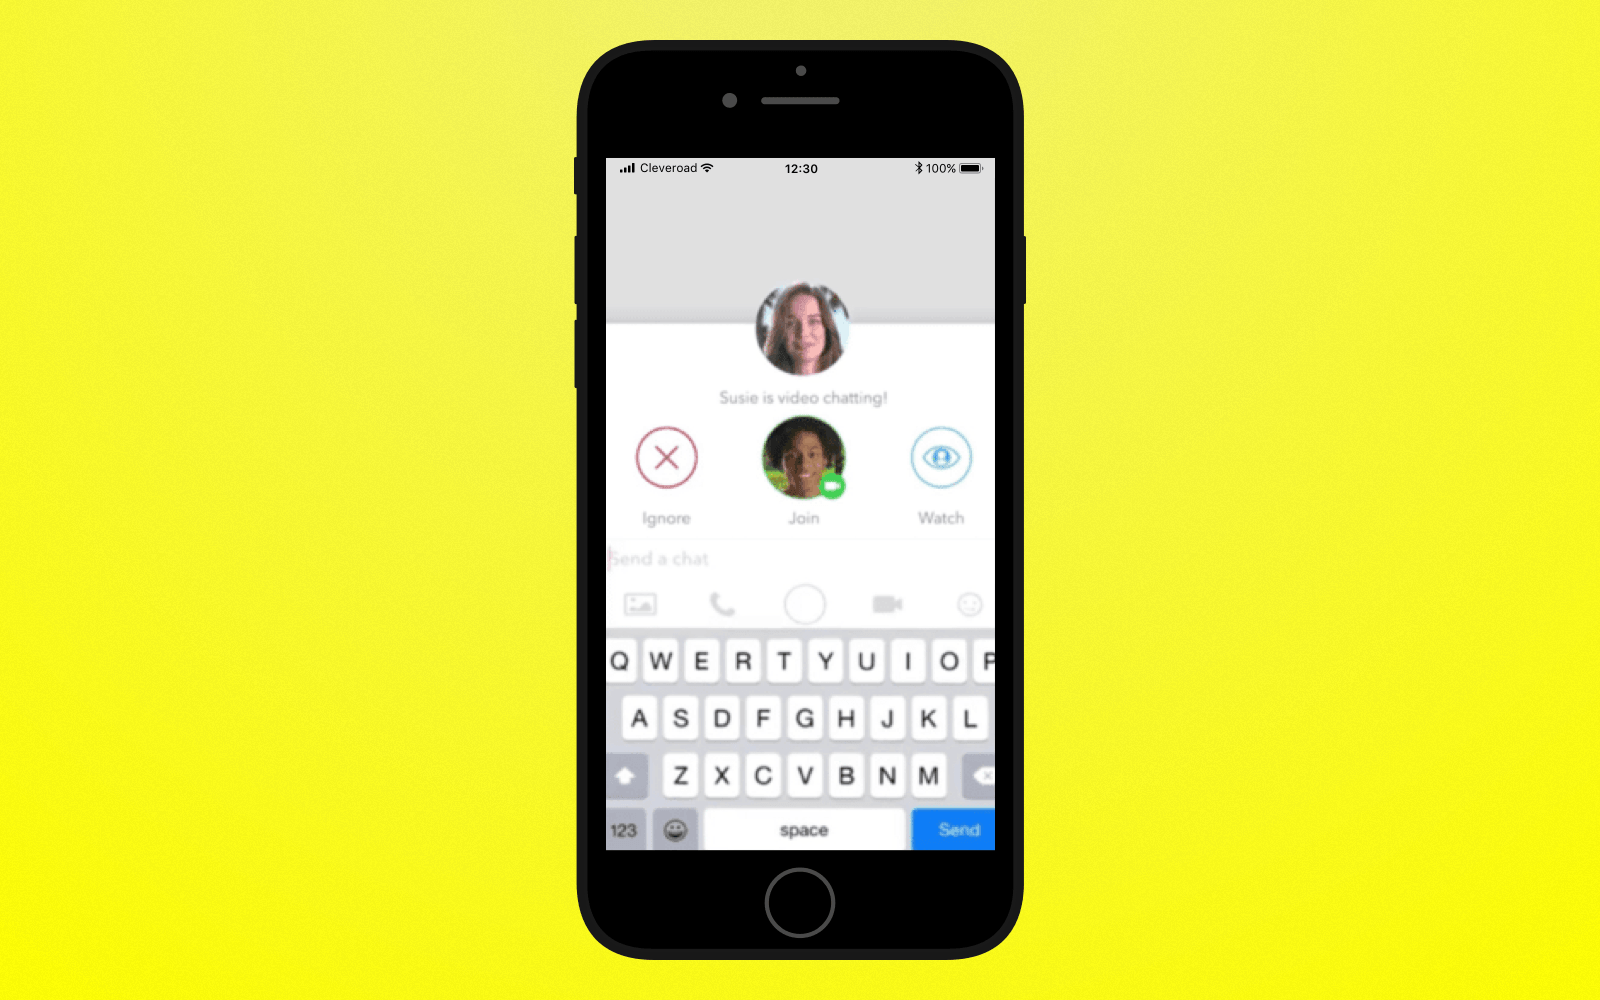 Add video and audio calls to create an app like Snapchat